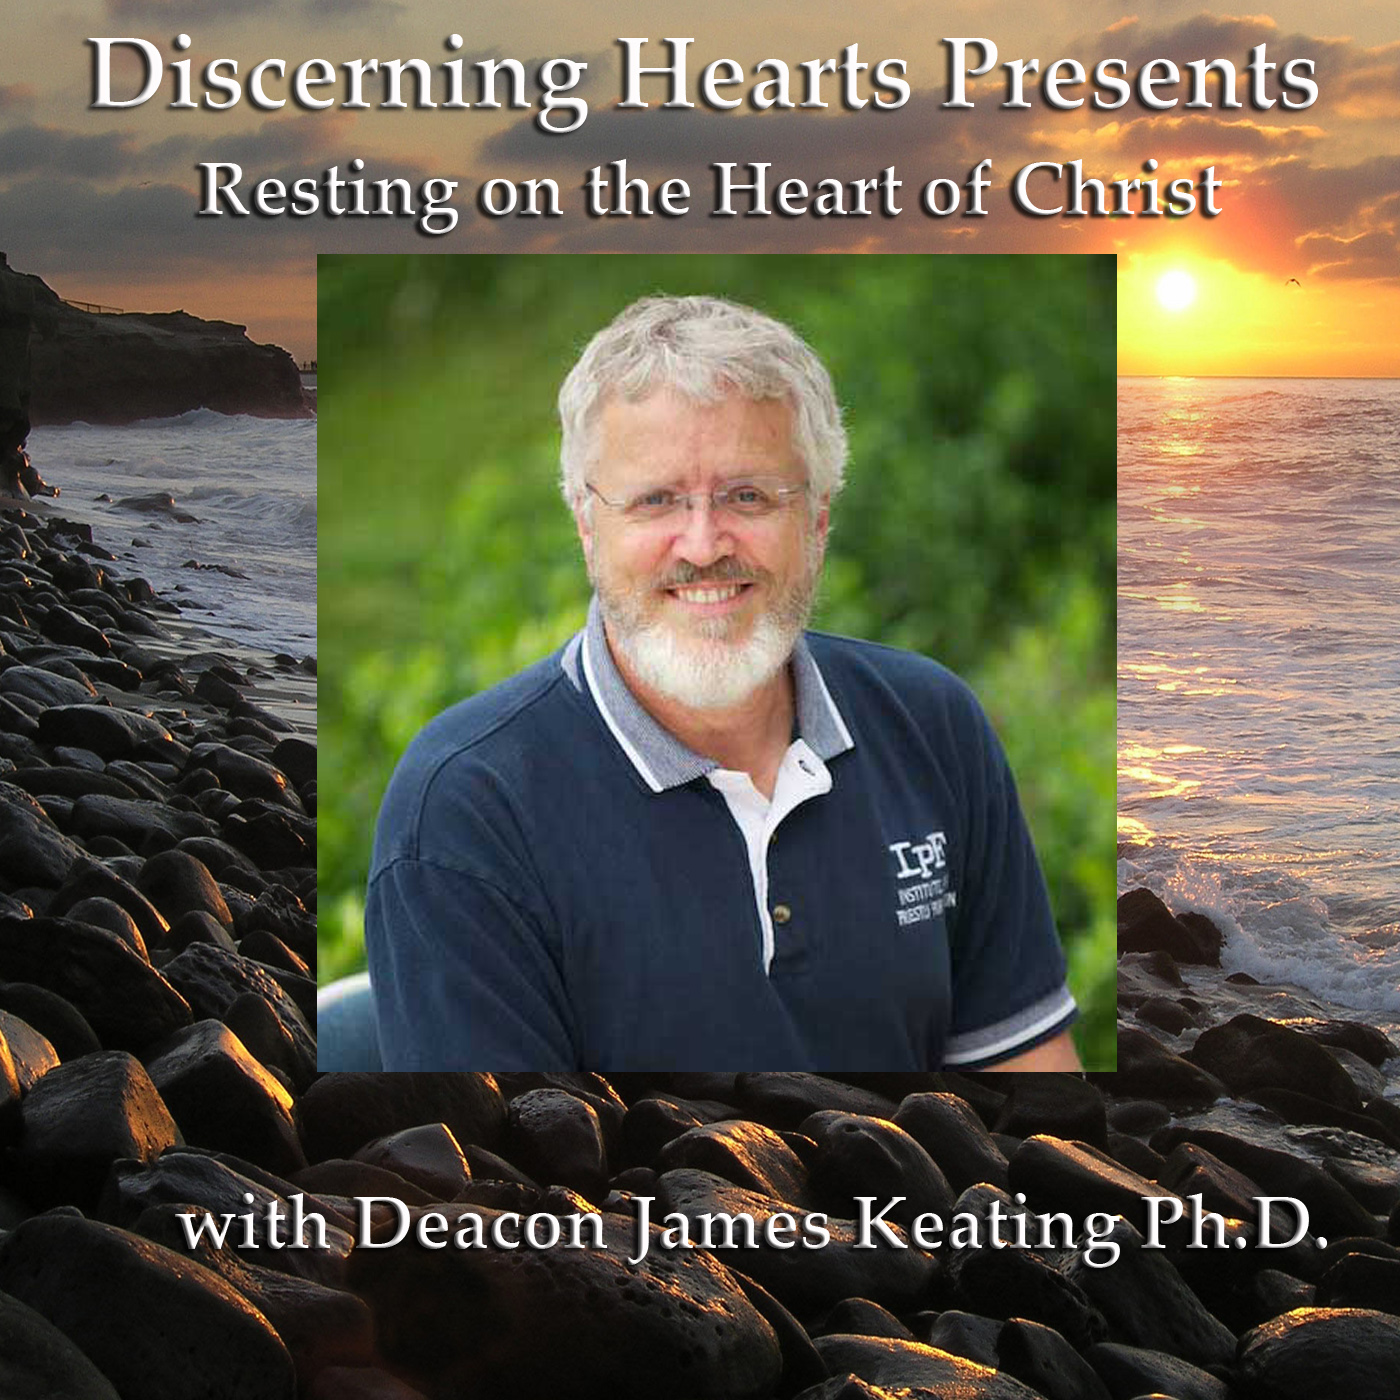 Discerning Hearts Catholic Podcasts » Deacon James Keating